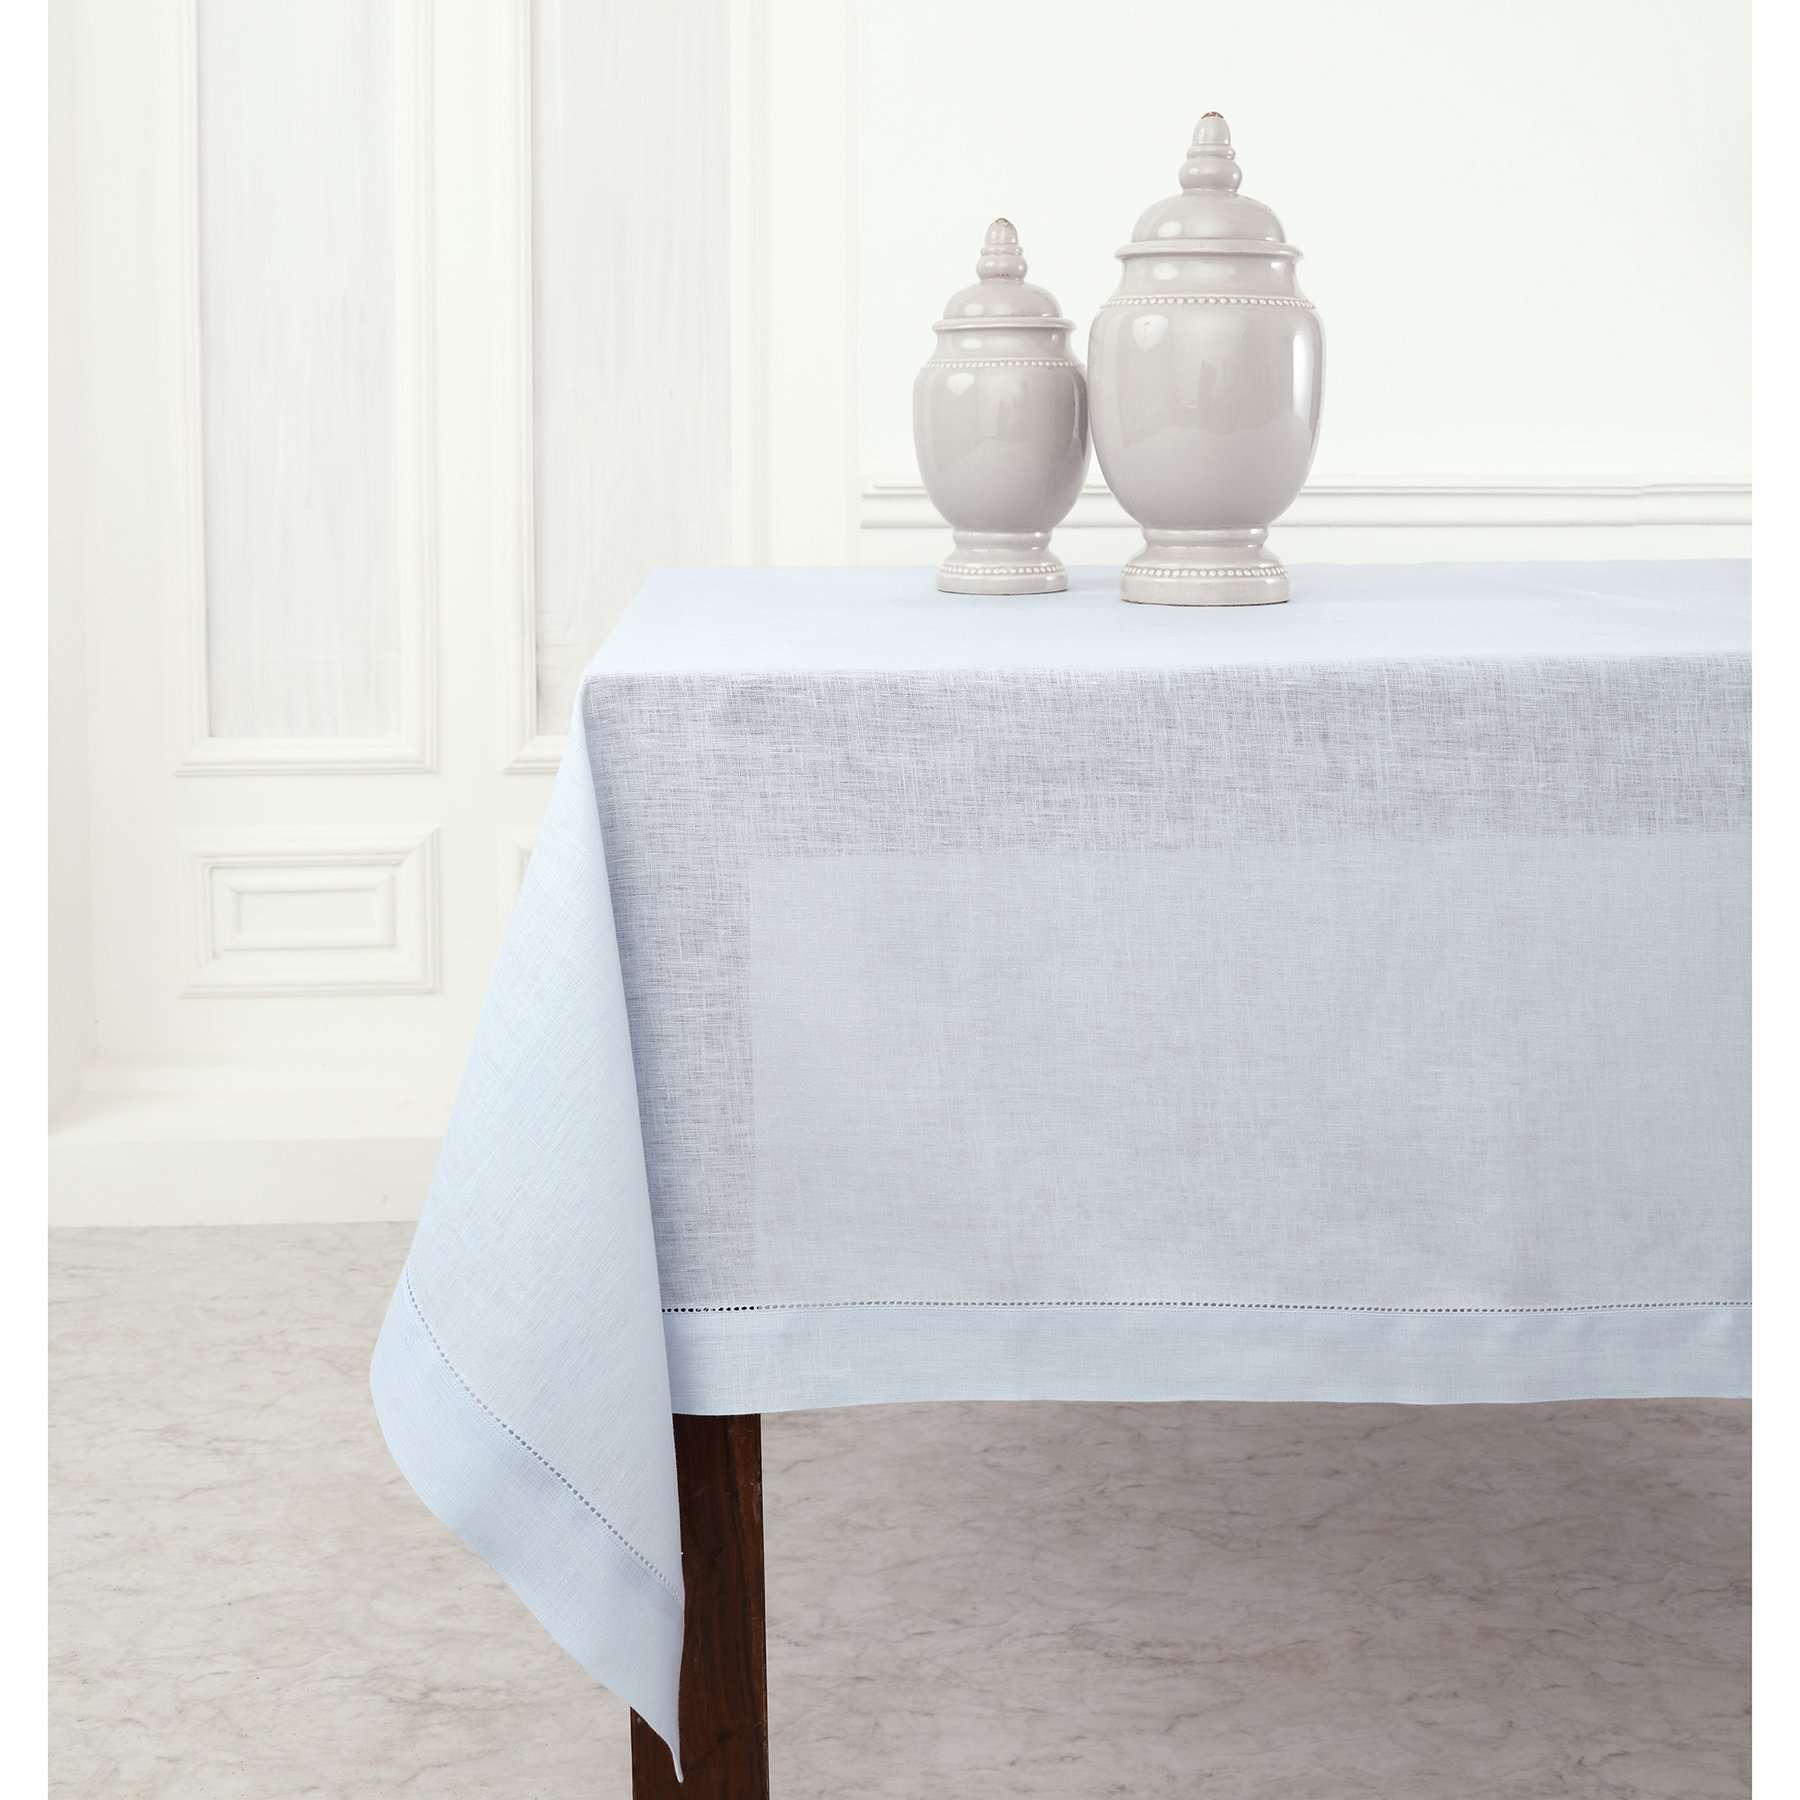 Solino Home Classic Hemstitch Tablecloth